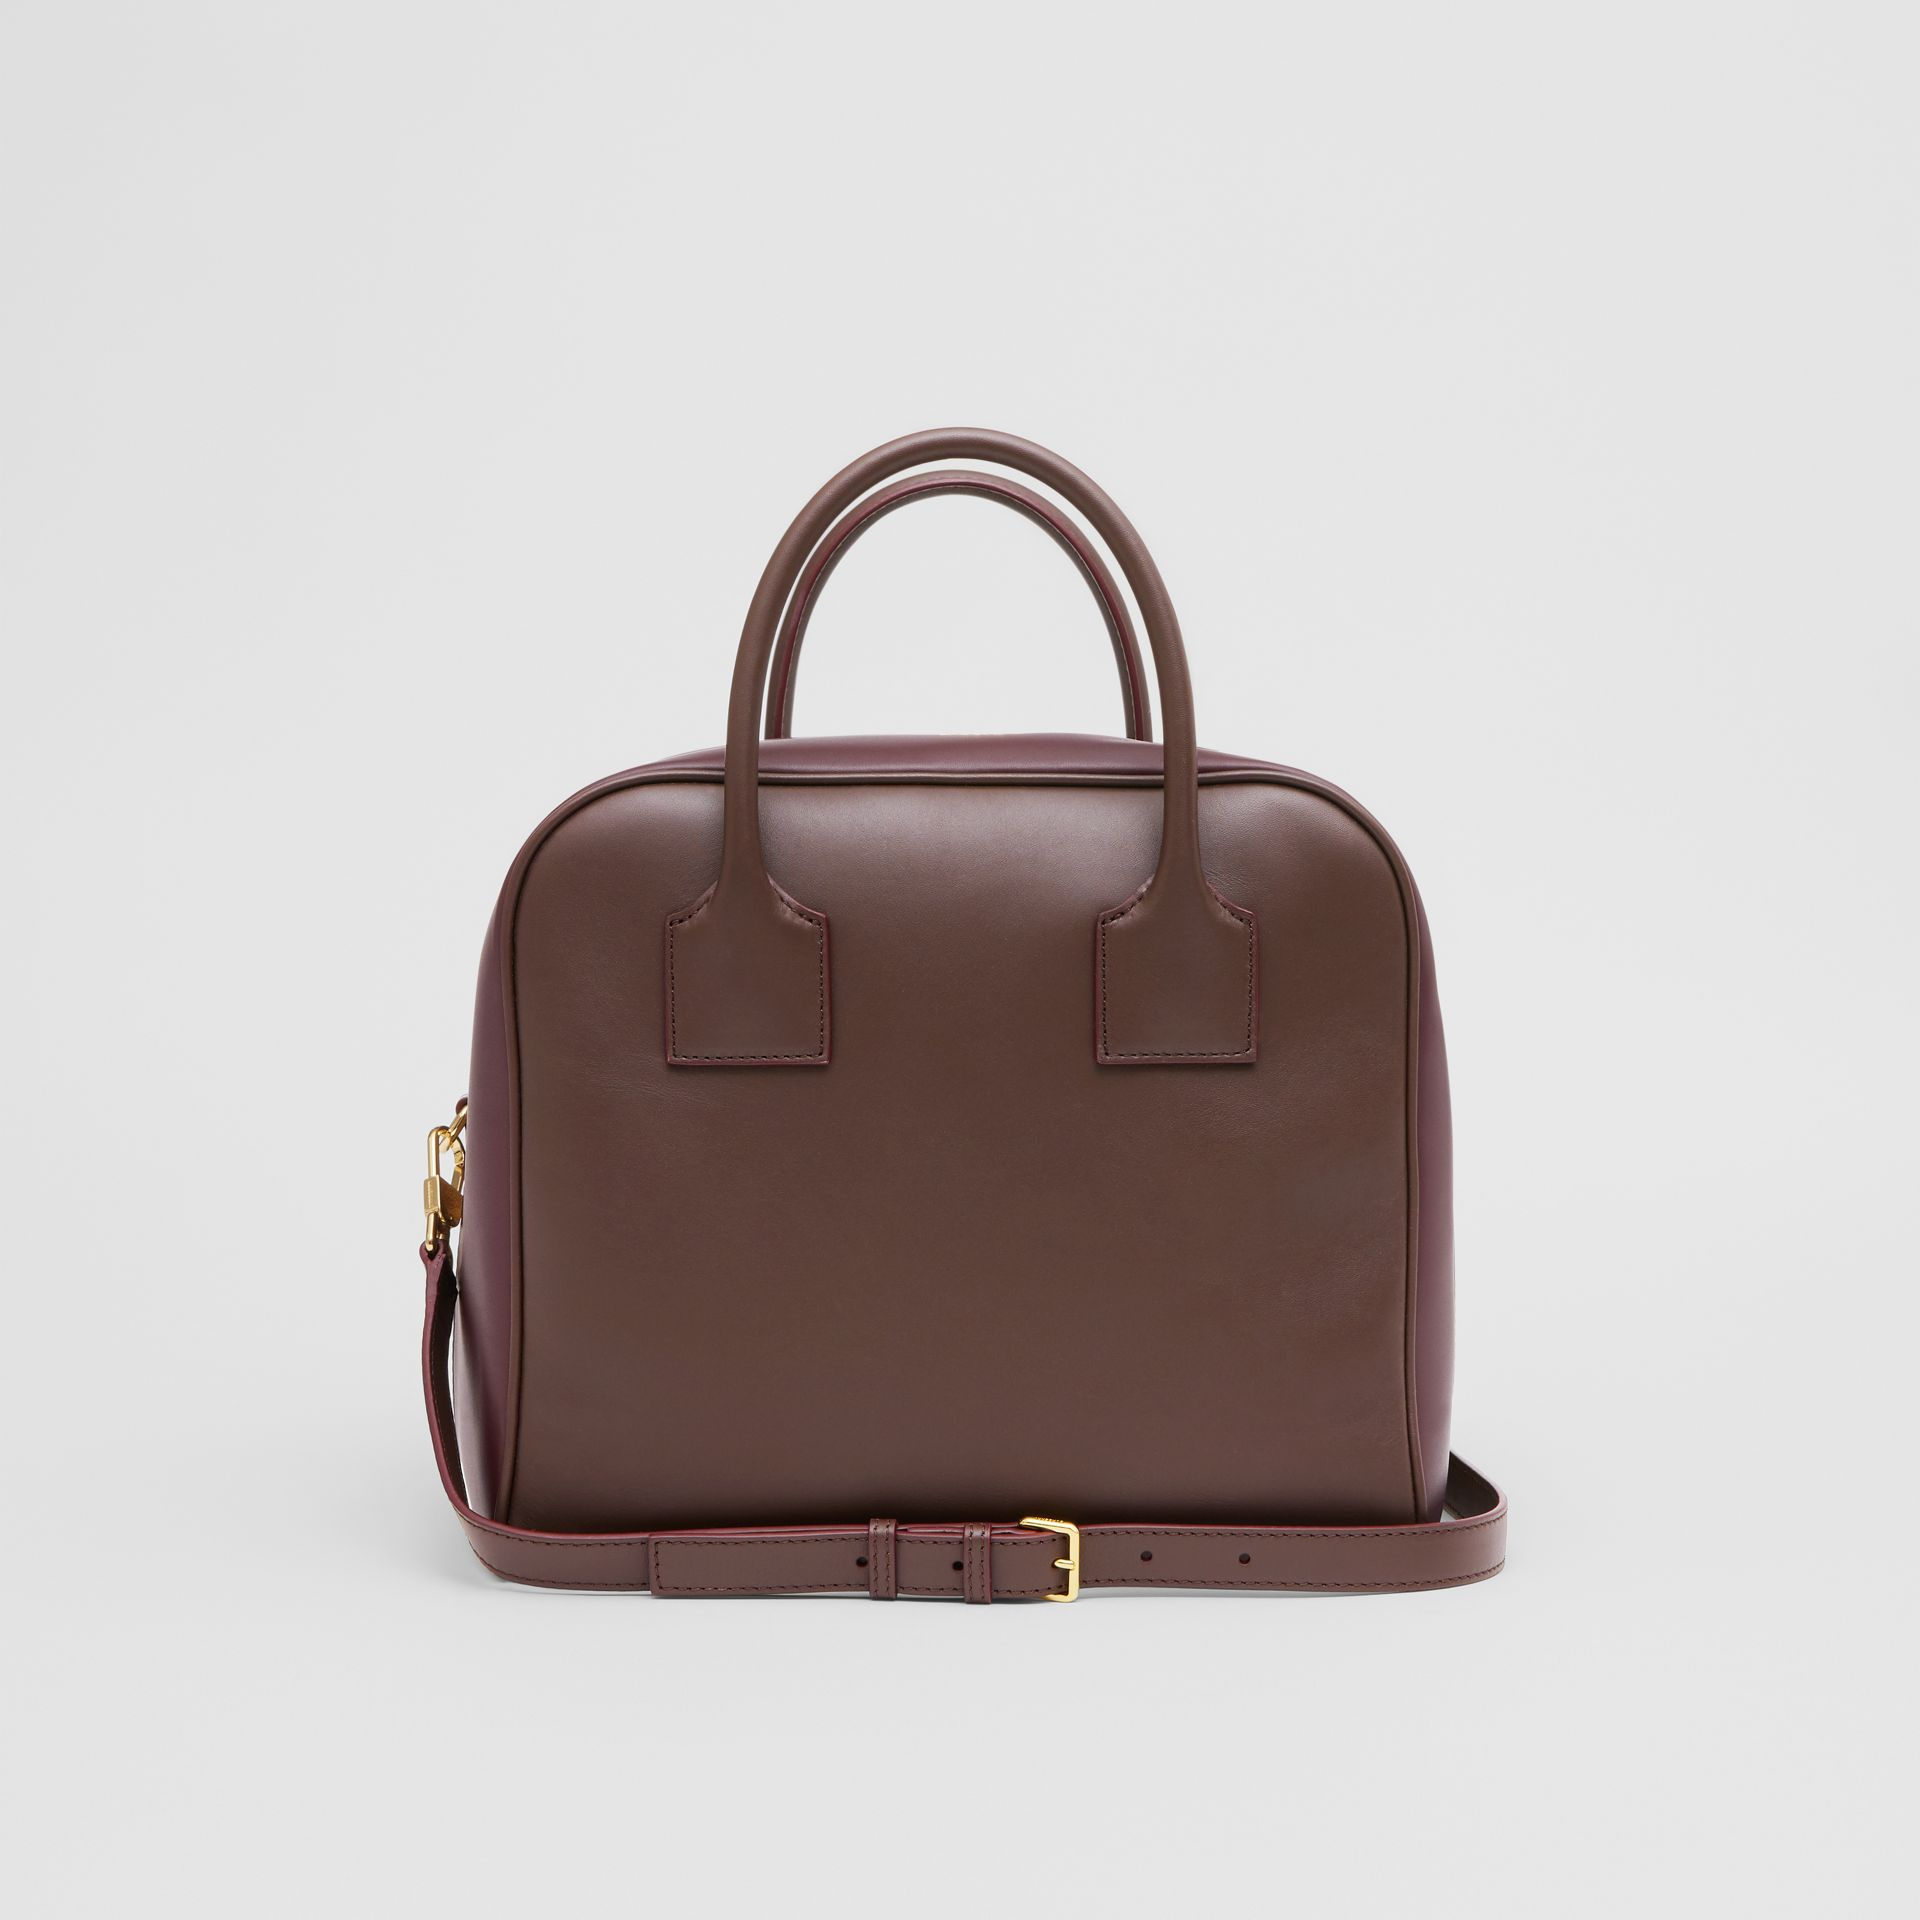 Medium Leather and Suede Cube Bag in Mahogany - Women | Burberry - gallery image 7